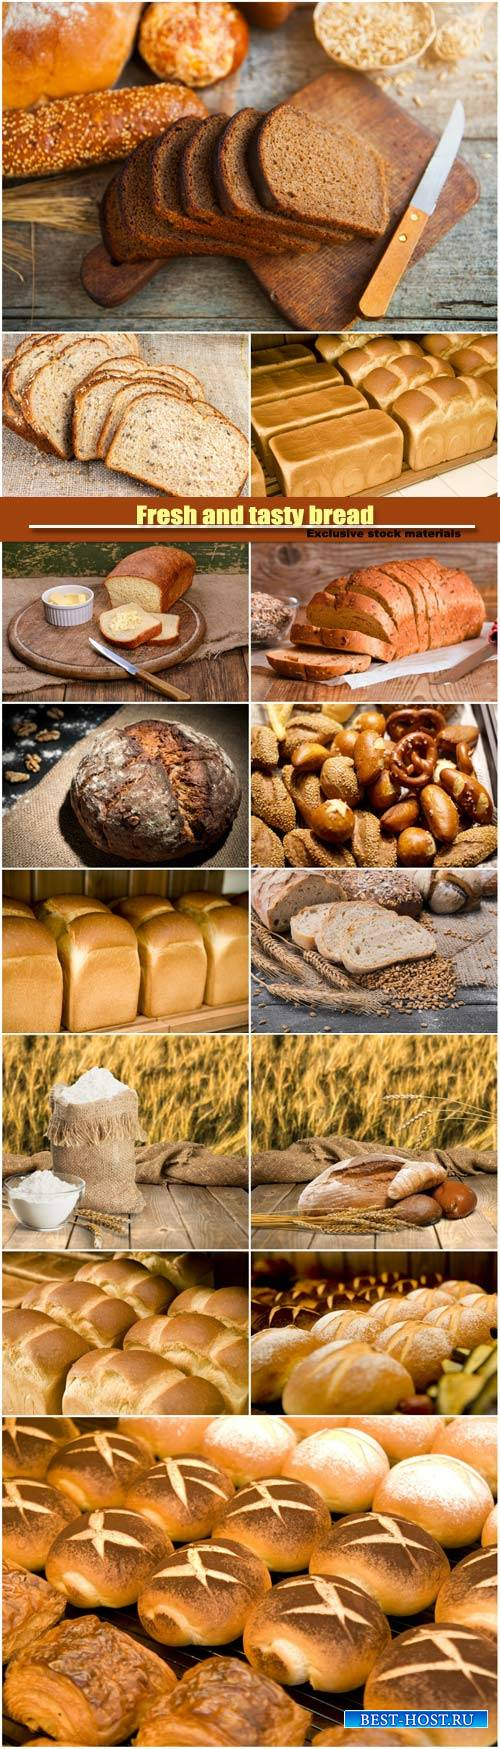 Fresh and tasty bread, various pastry and bakery